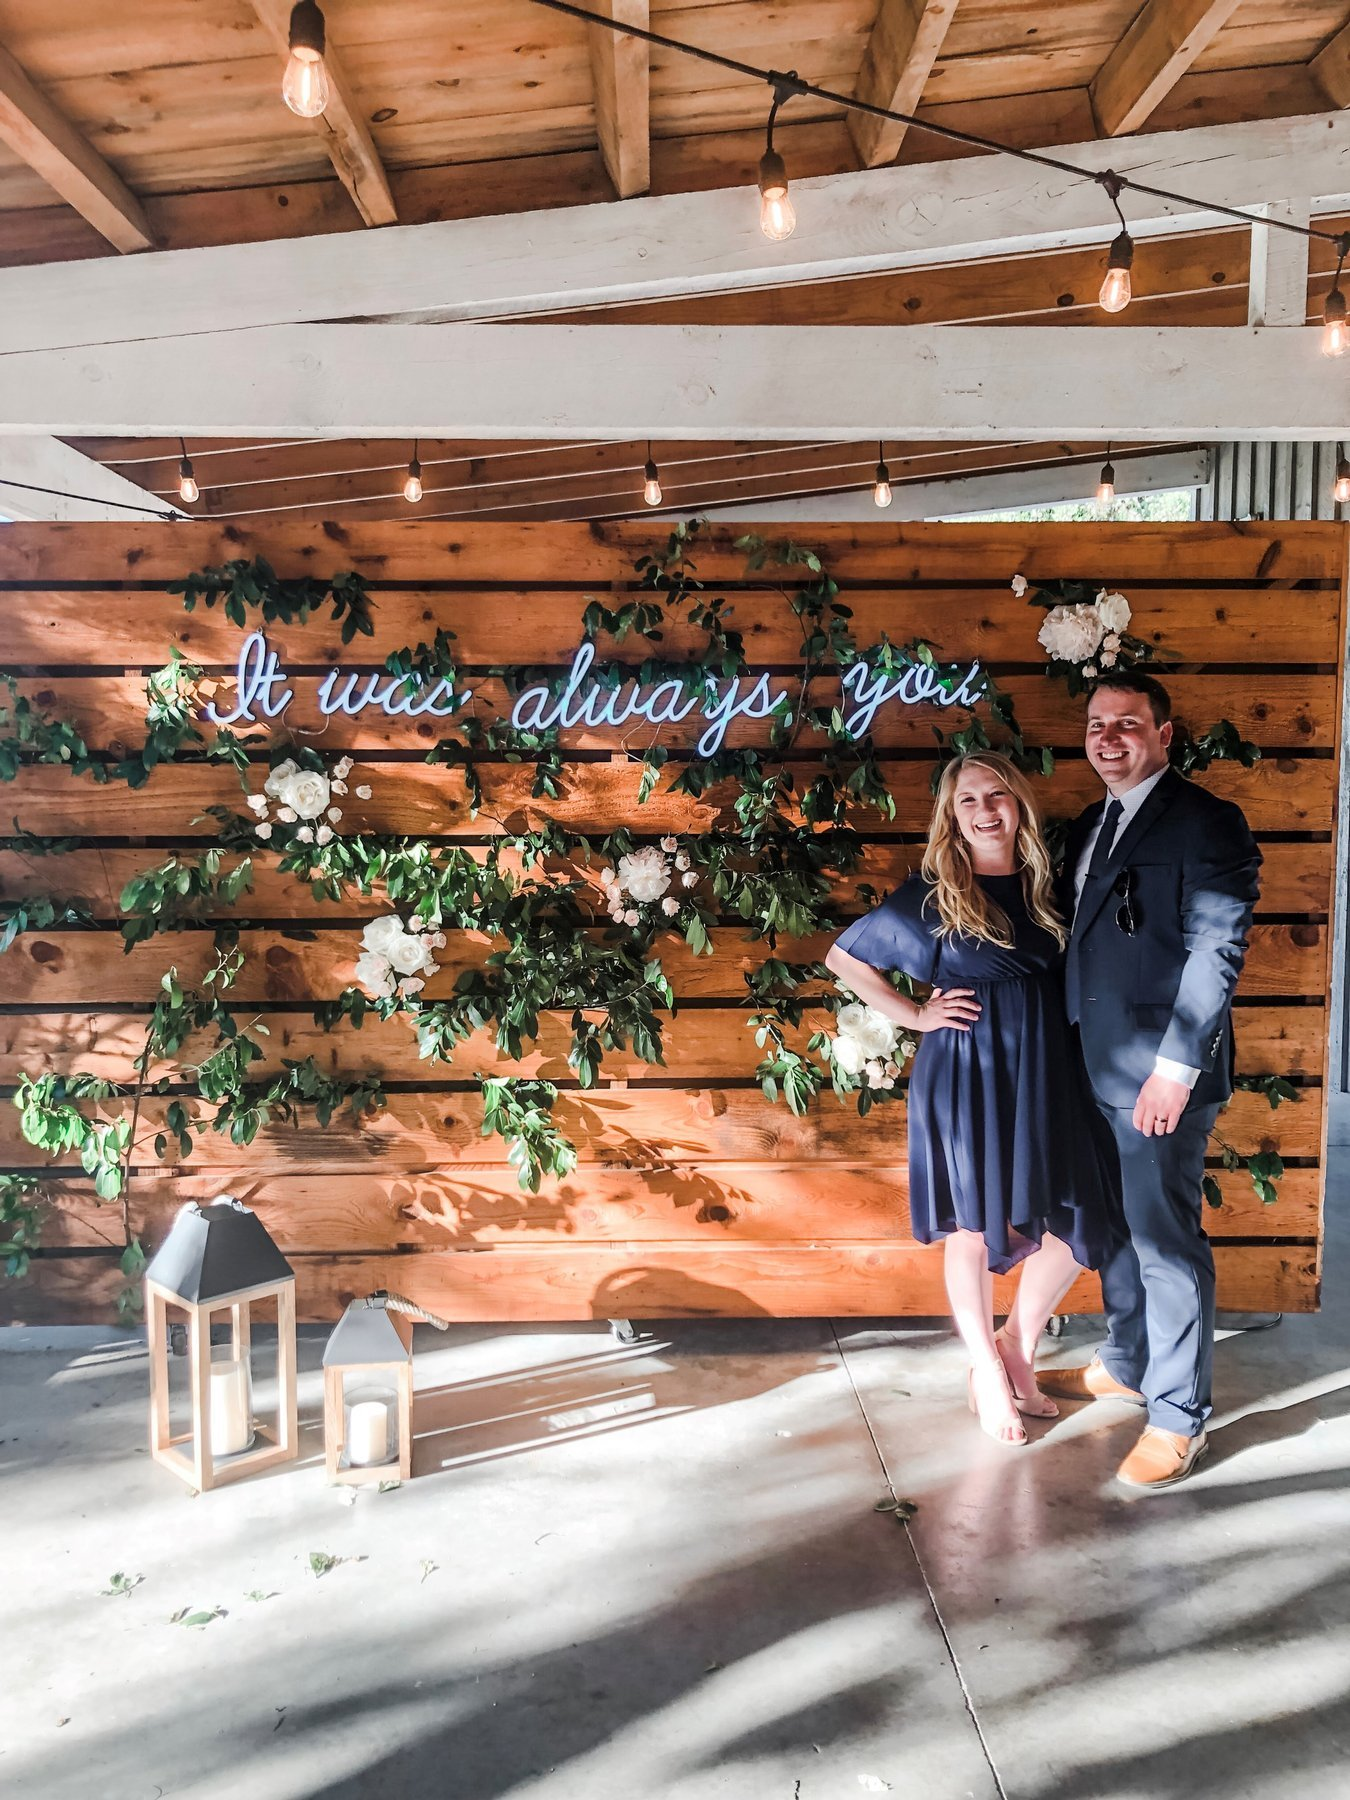 Brandon and Wendi pictured at a wedding in 2019. (Photo credit: Wendi Hawthorne)